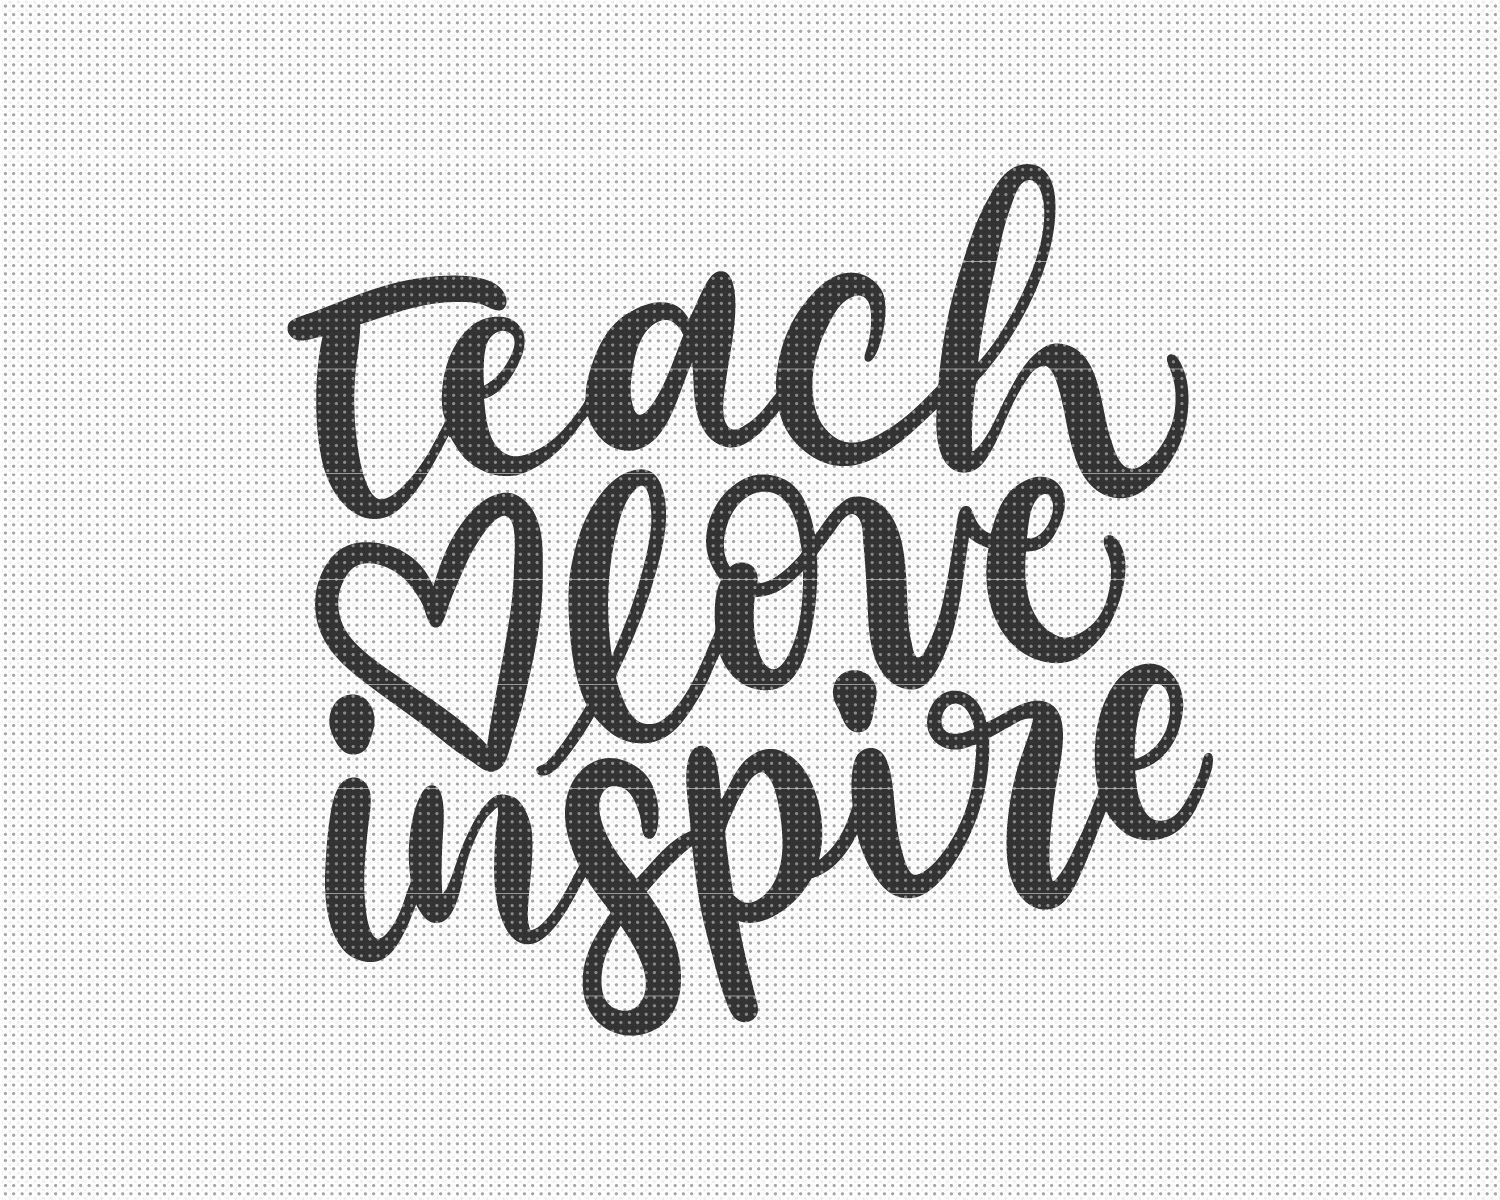 Download Teach Love Inspire SVG File - Pixelcolours in 2020 ...